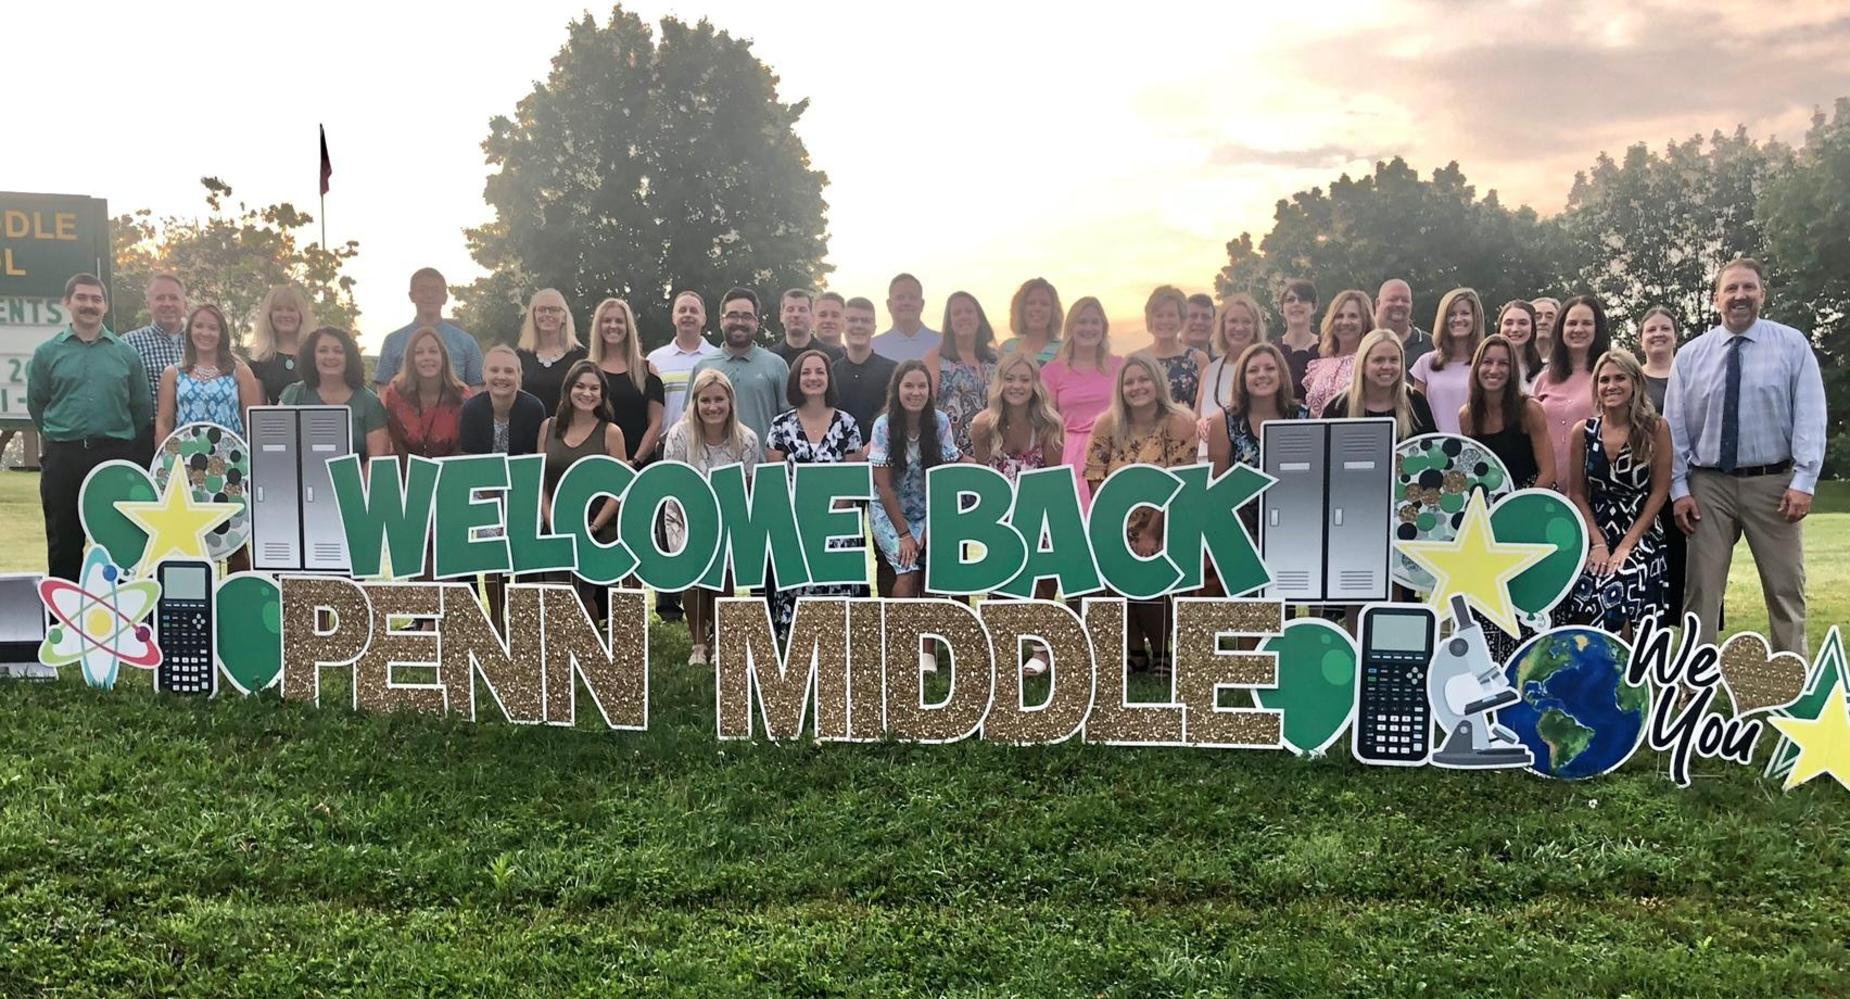 Penn Middle Staff is excited to welcome back our students.